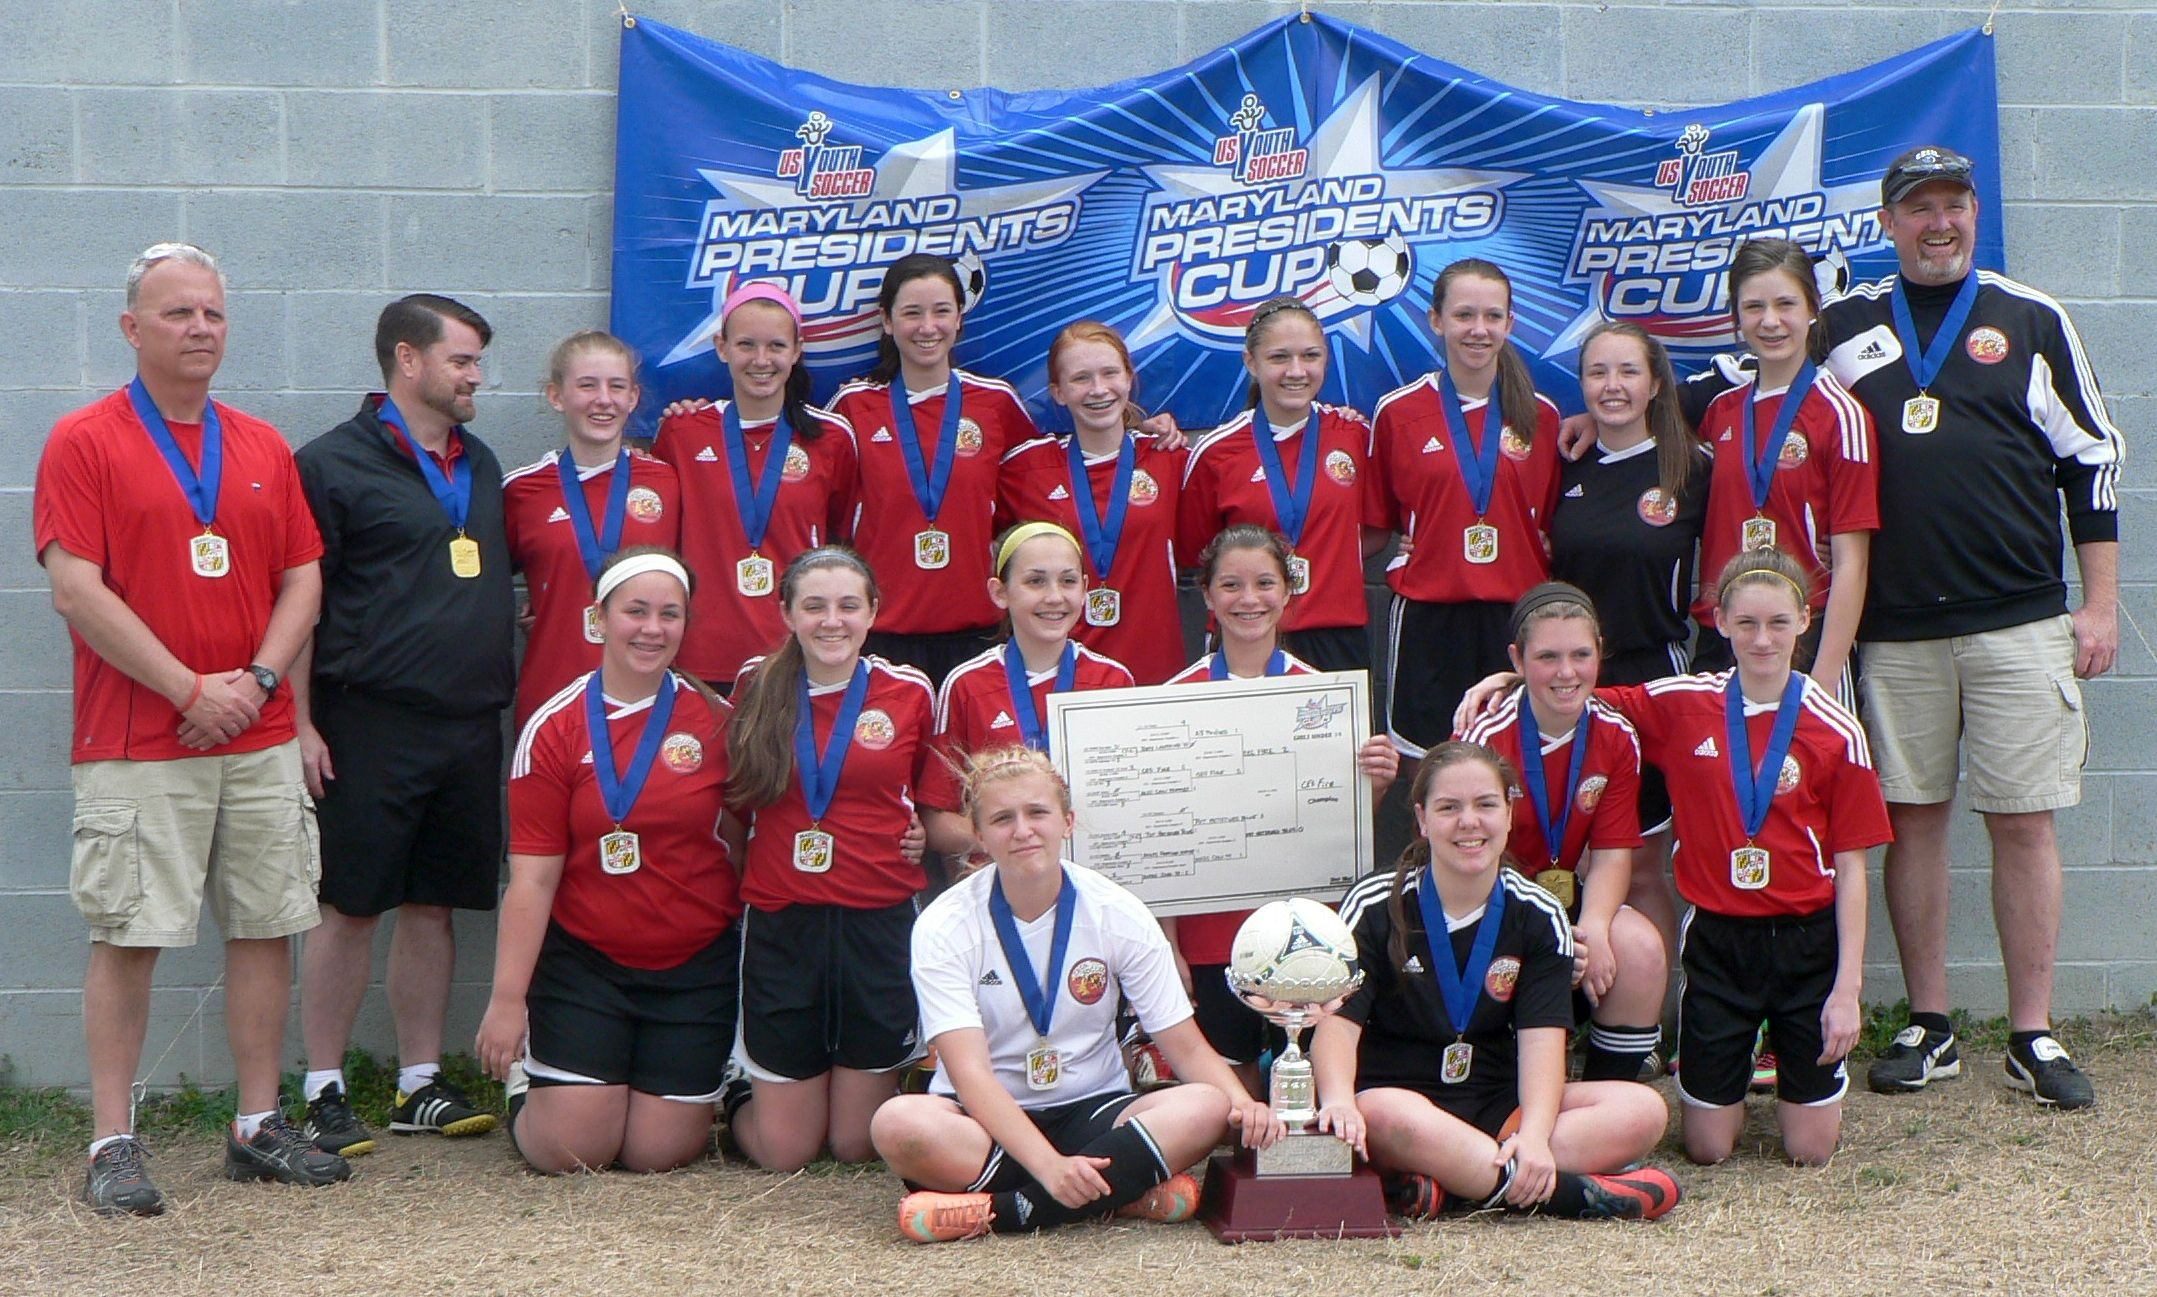 2014 Maryland President's Cup Champions Cecil Fire